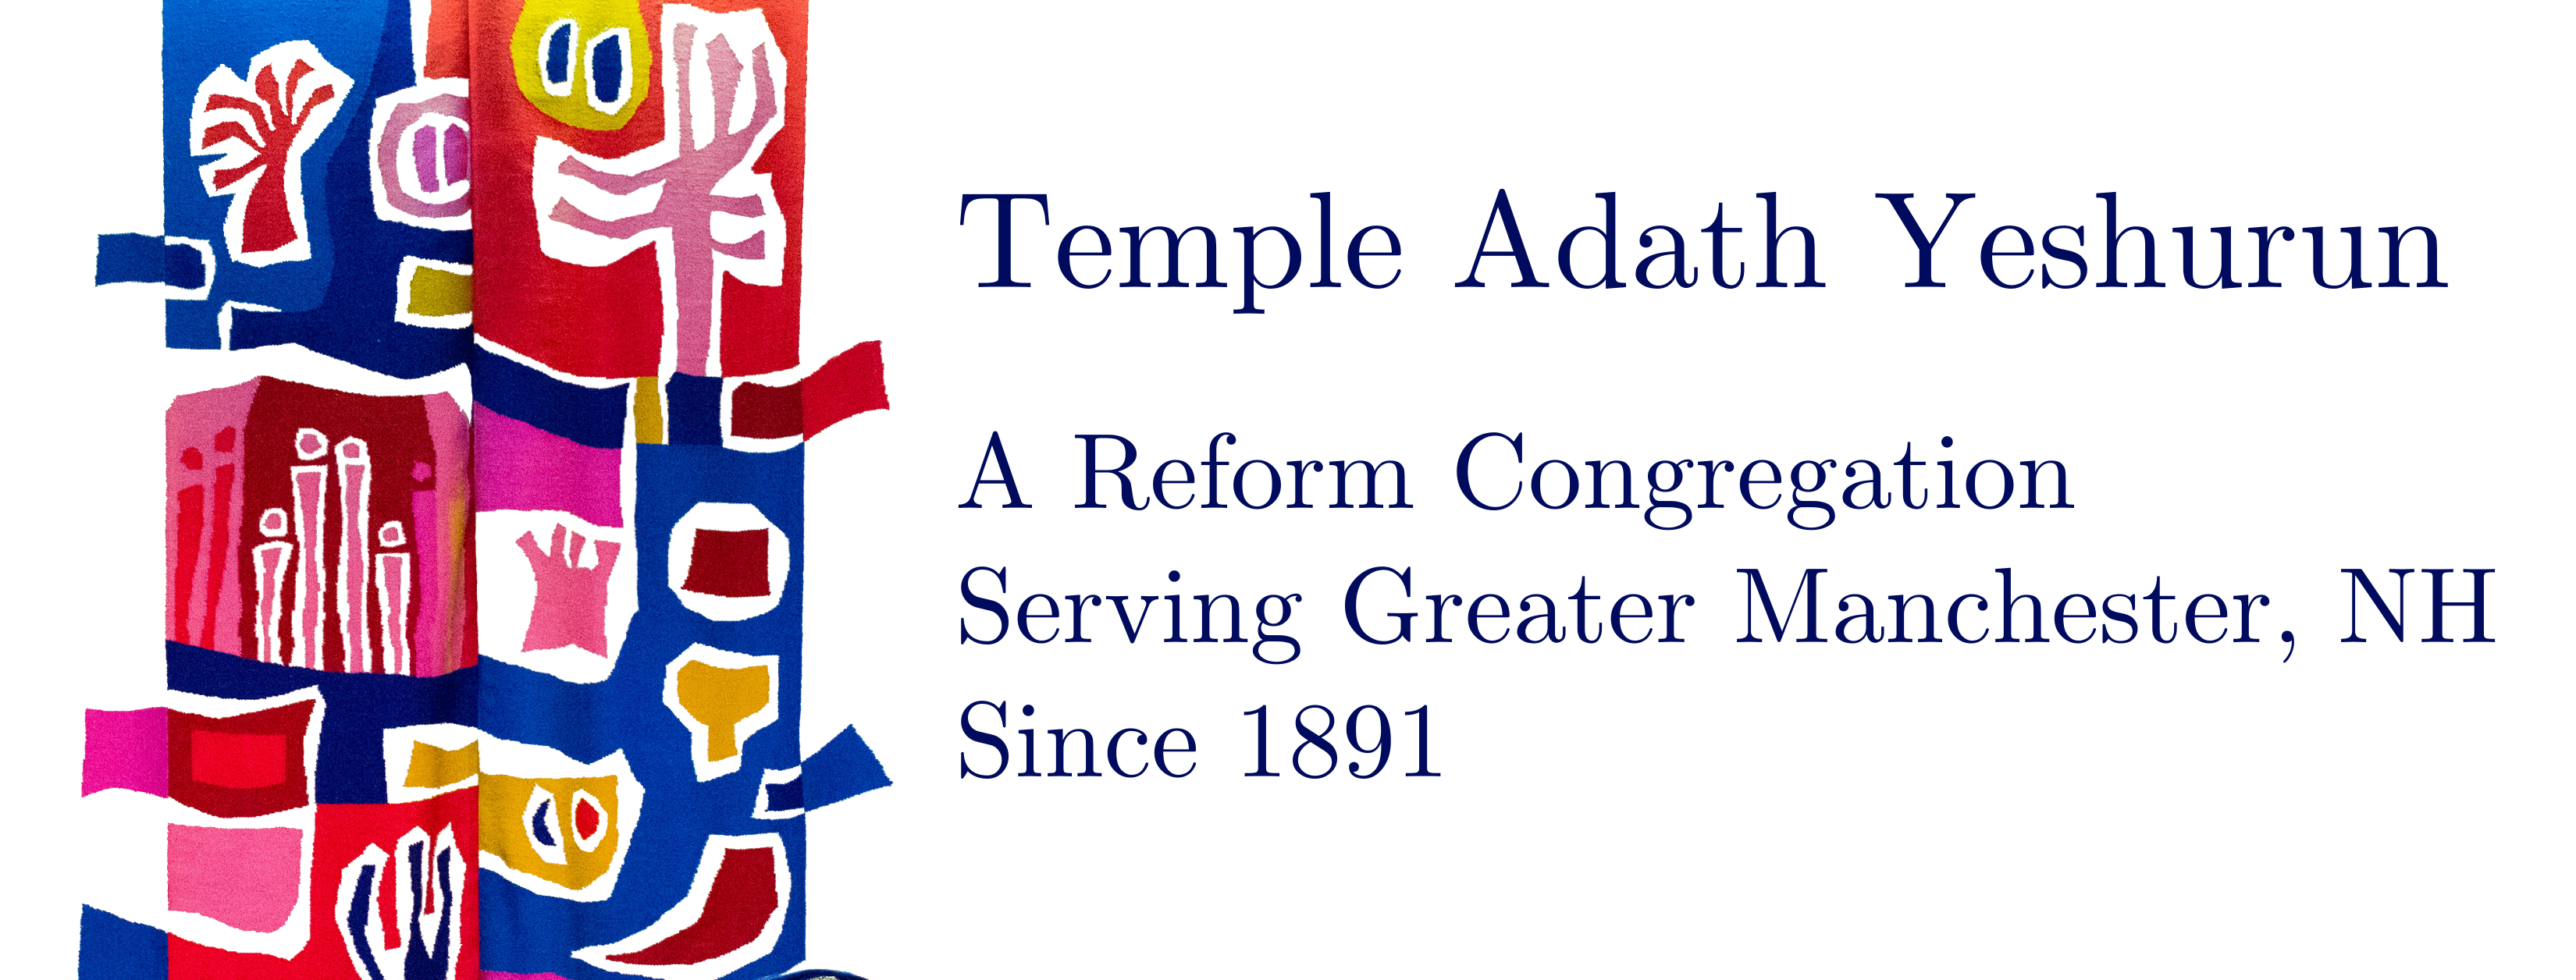 Temple Adath Yeshurun - Manchester, NH